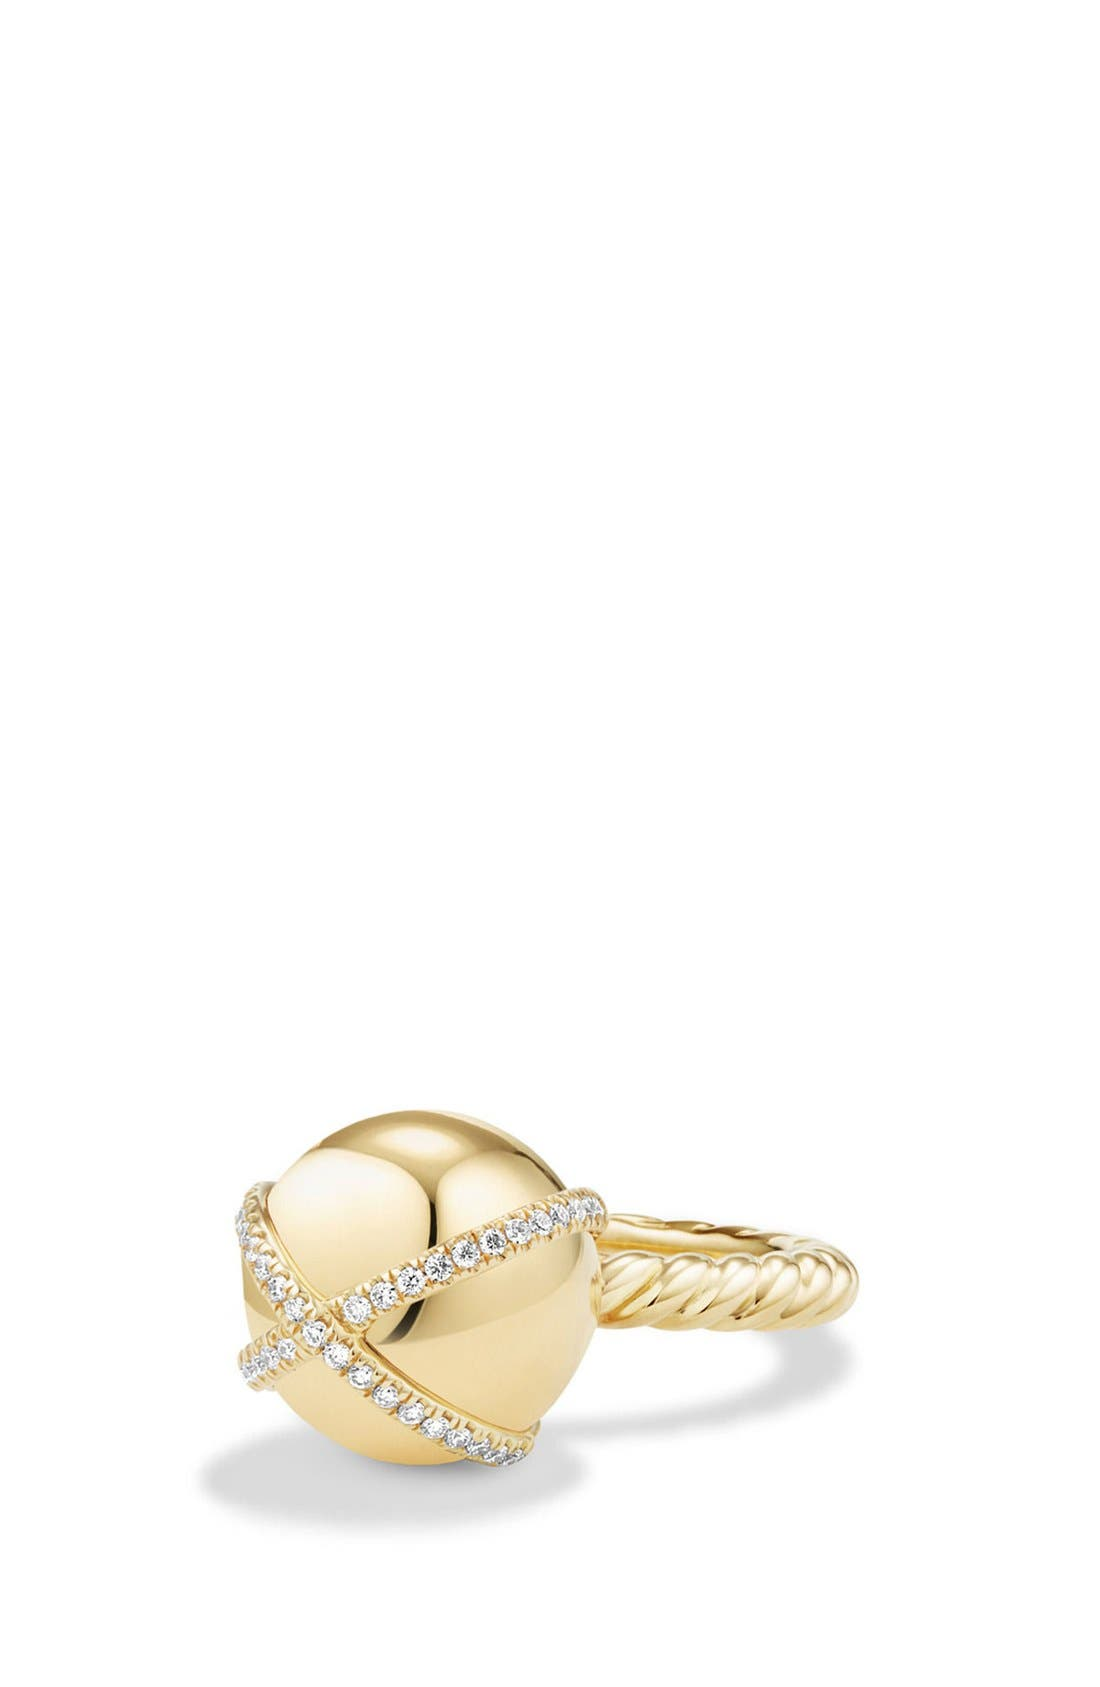 'Solari' Wrap Ring with Pavé Diamonds in 18k Gold,                         Main,                         color, YELLOW GOLD